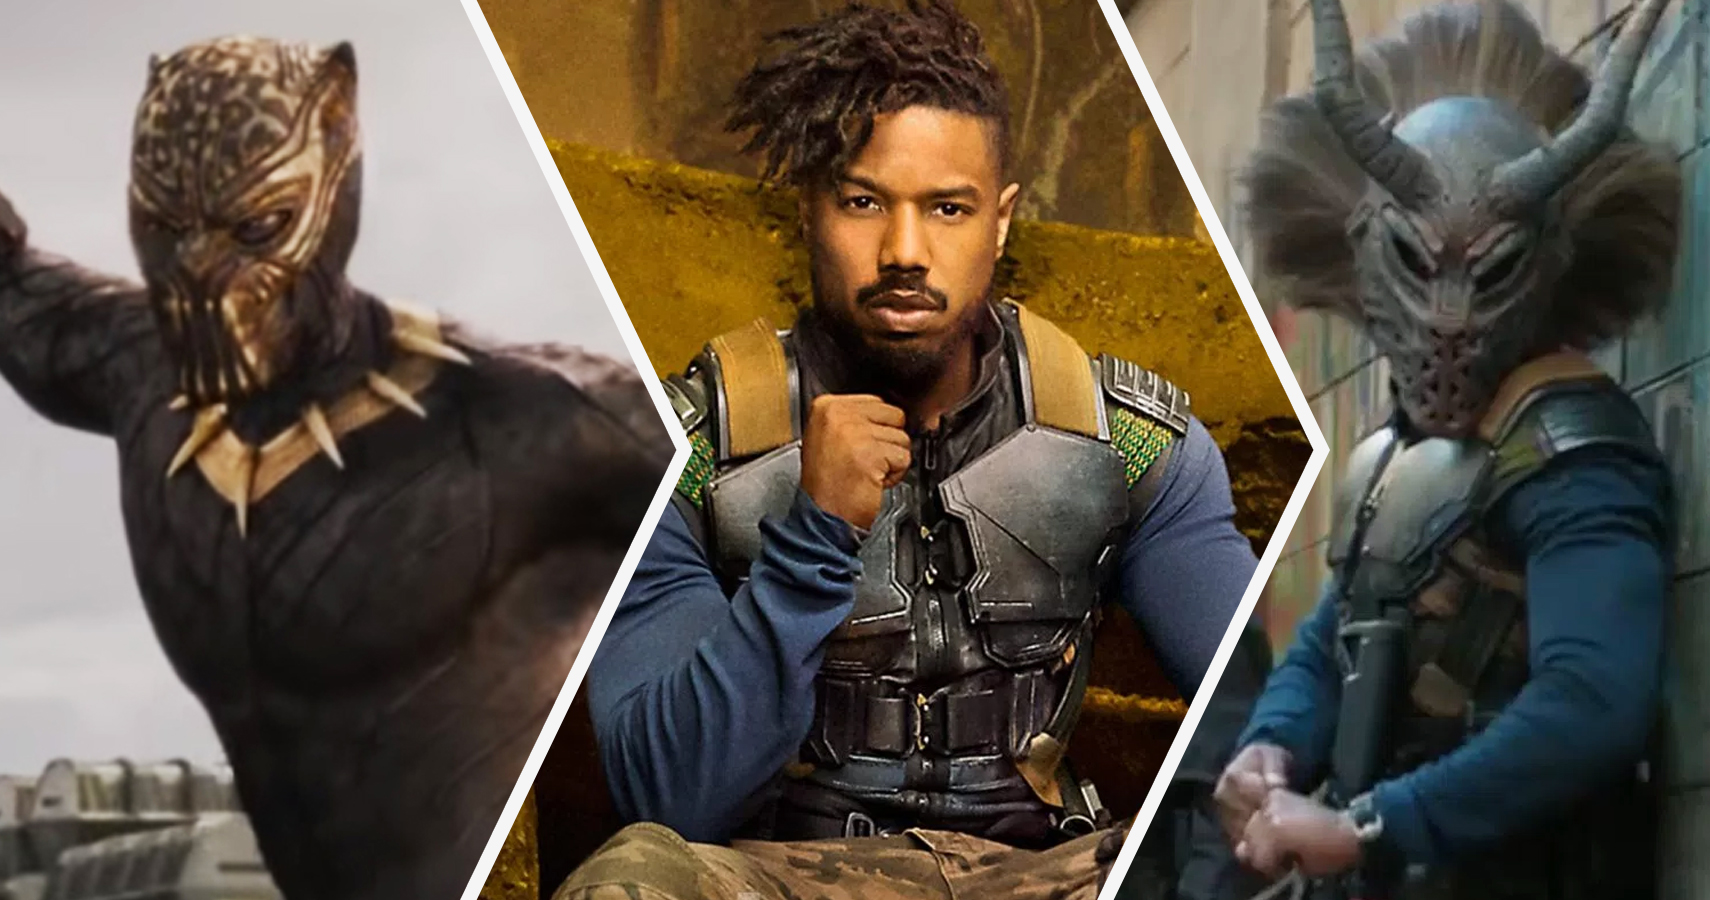 https://www.cbr.com/wp-content/uploads/2018/02/killmonger-1.jpg